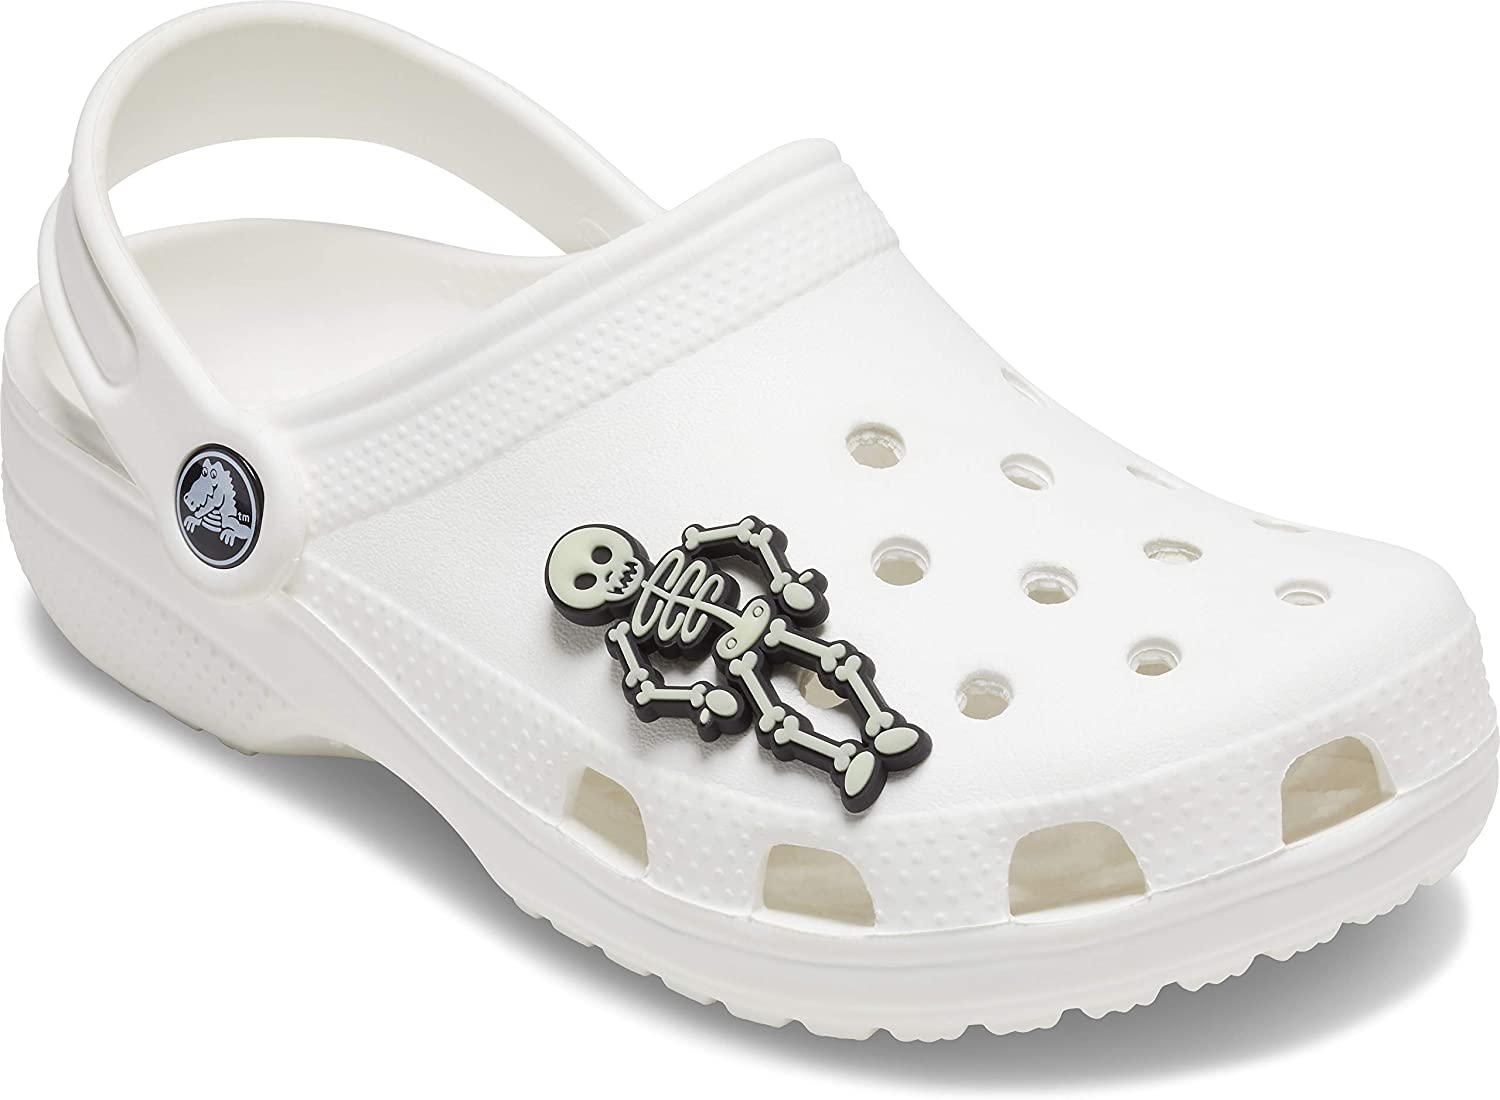 Crocs 10007922 Shoe Charms Glow in The Dark Skeleton Small